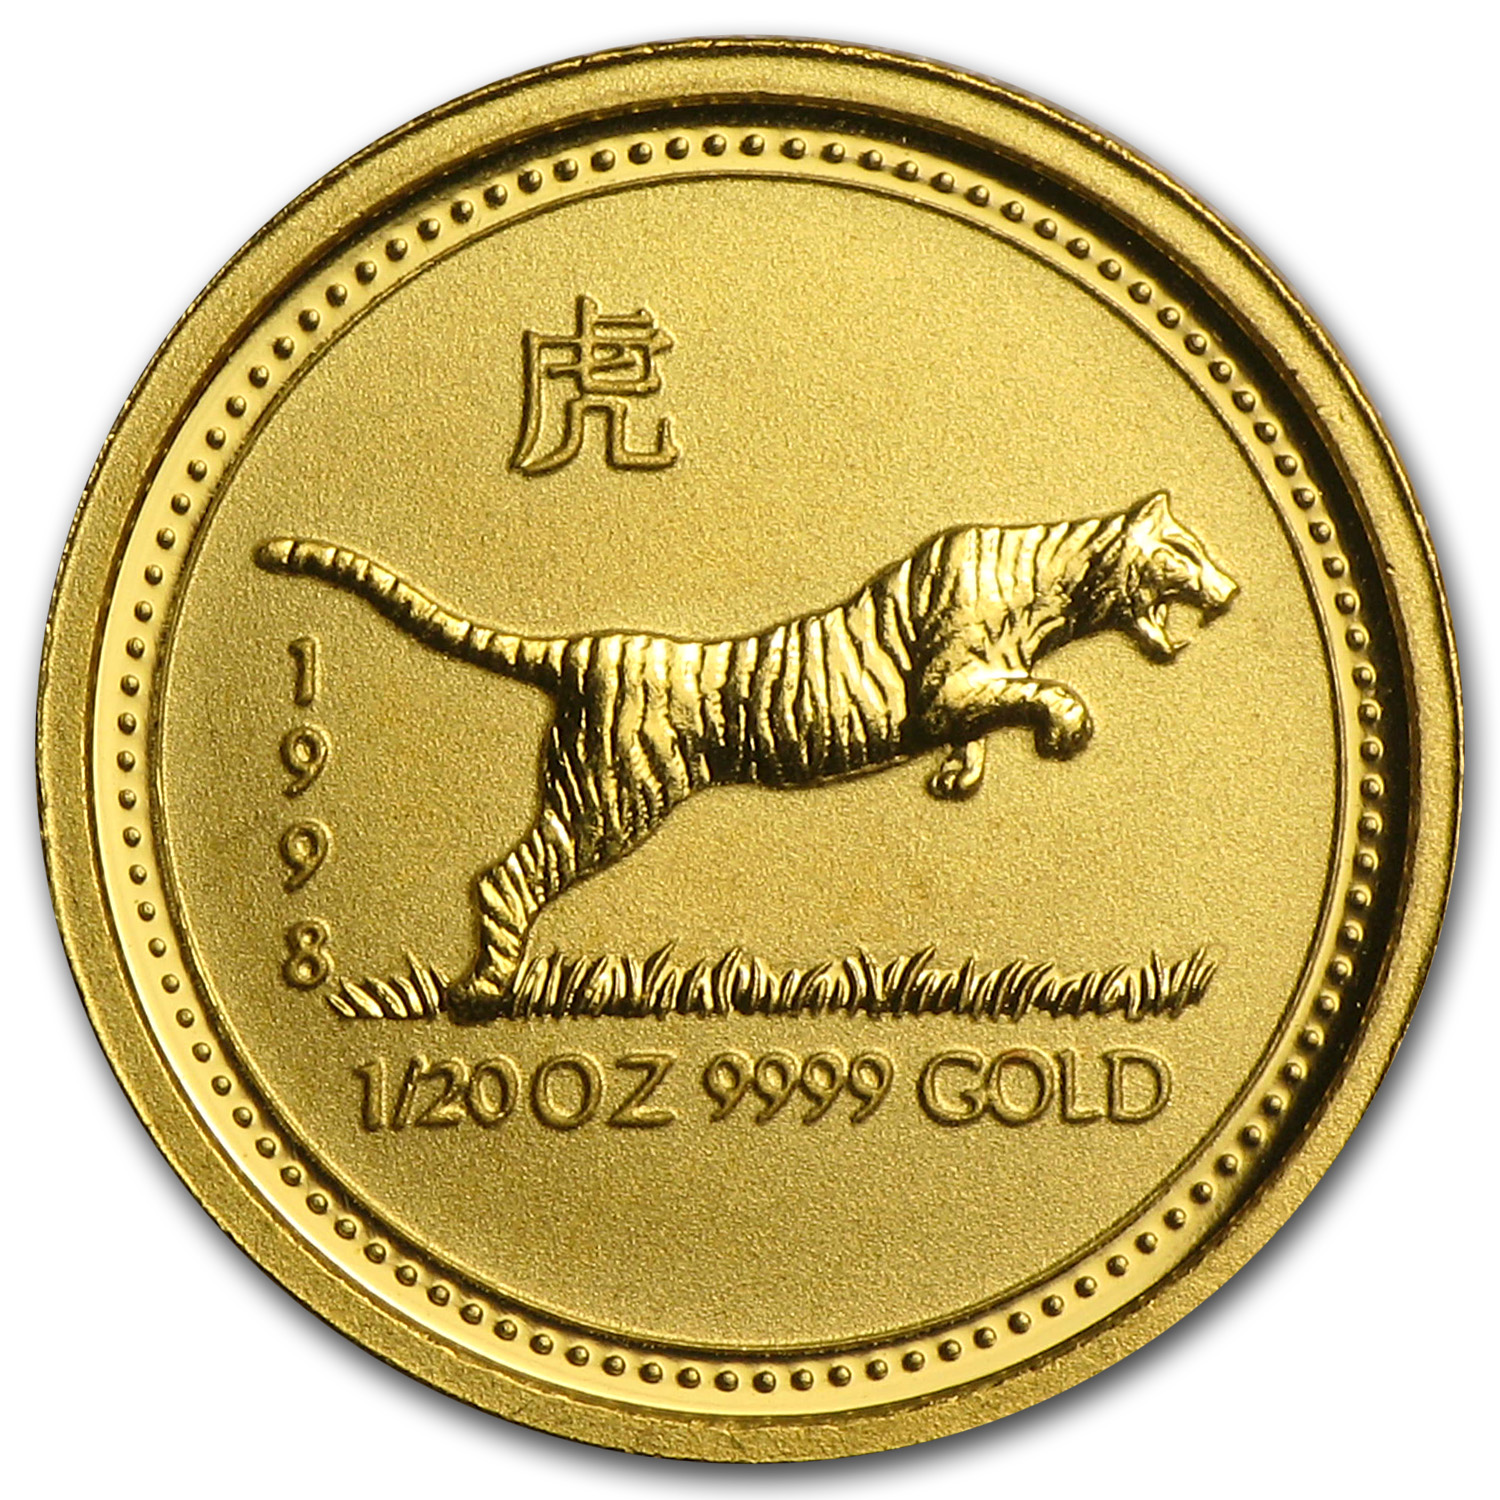 1998 1/20 oz Gold Year of the Tiger Coin (SI) (Light Abrasions)